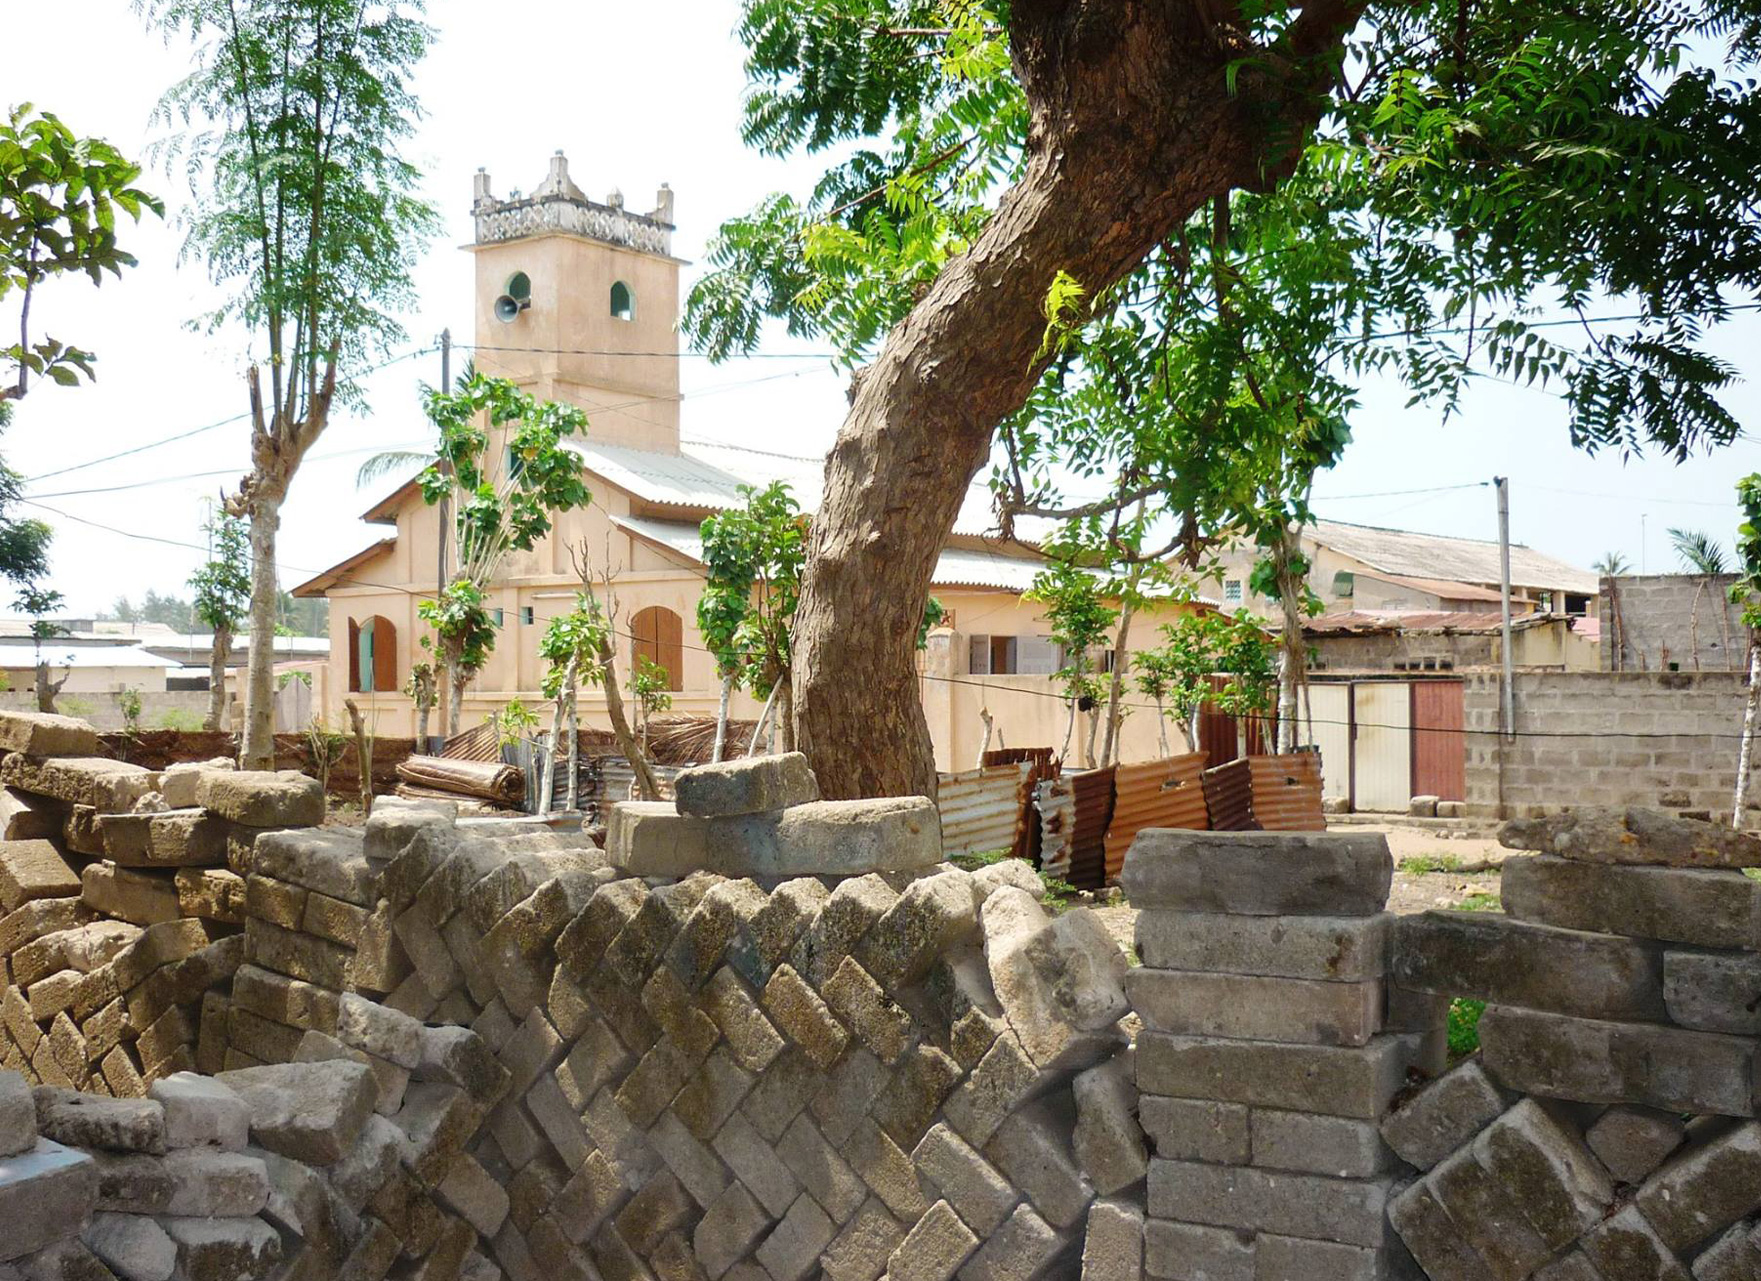 The mosque in Diata, the Yorùbá quarter of Agoué in Benin, view from the house of the Da Gloria family. The style is influenced by Brazilian church architecture. ©Lisa Earl Castillo